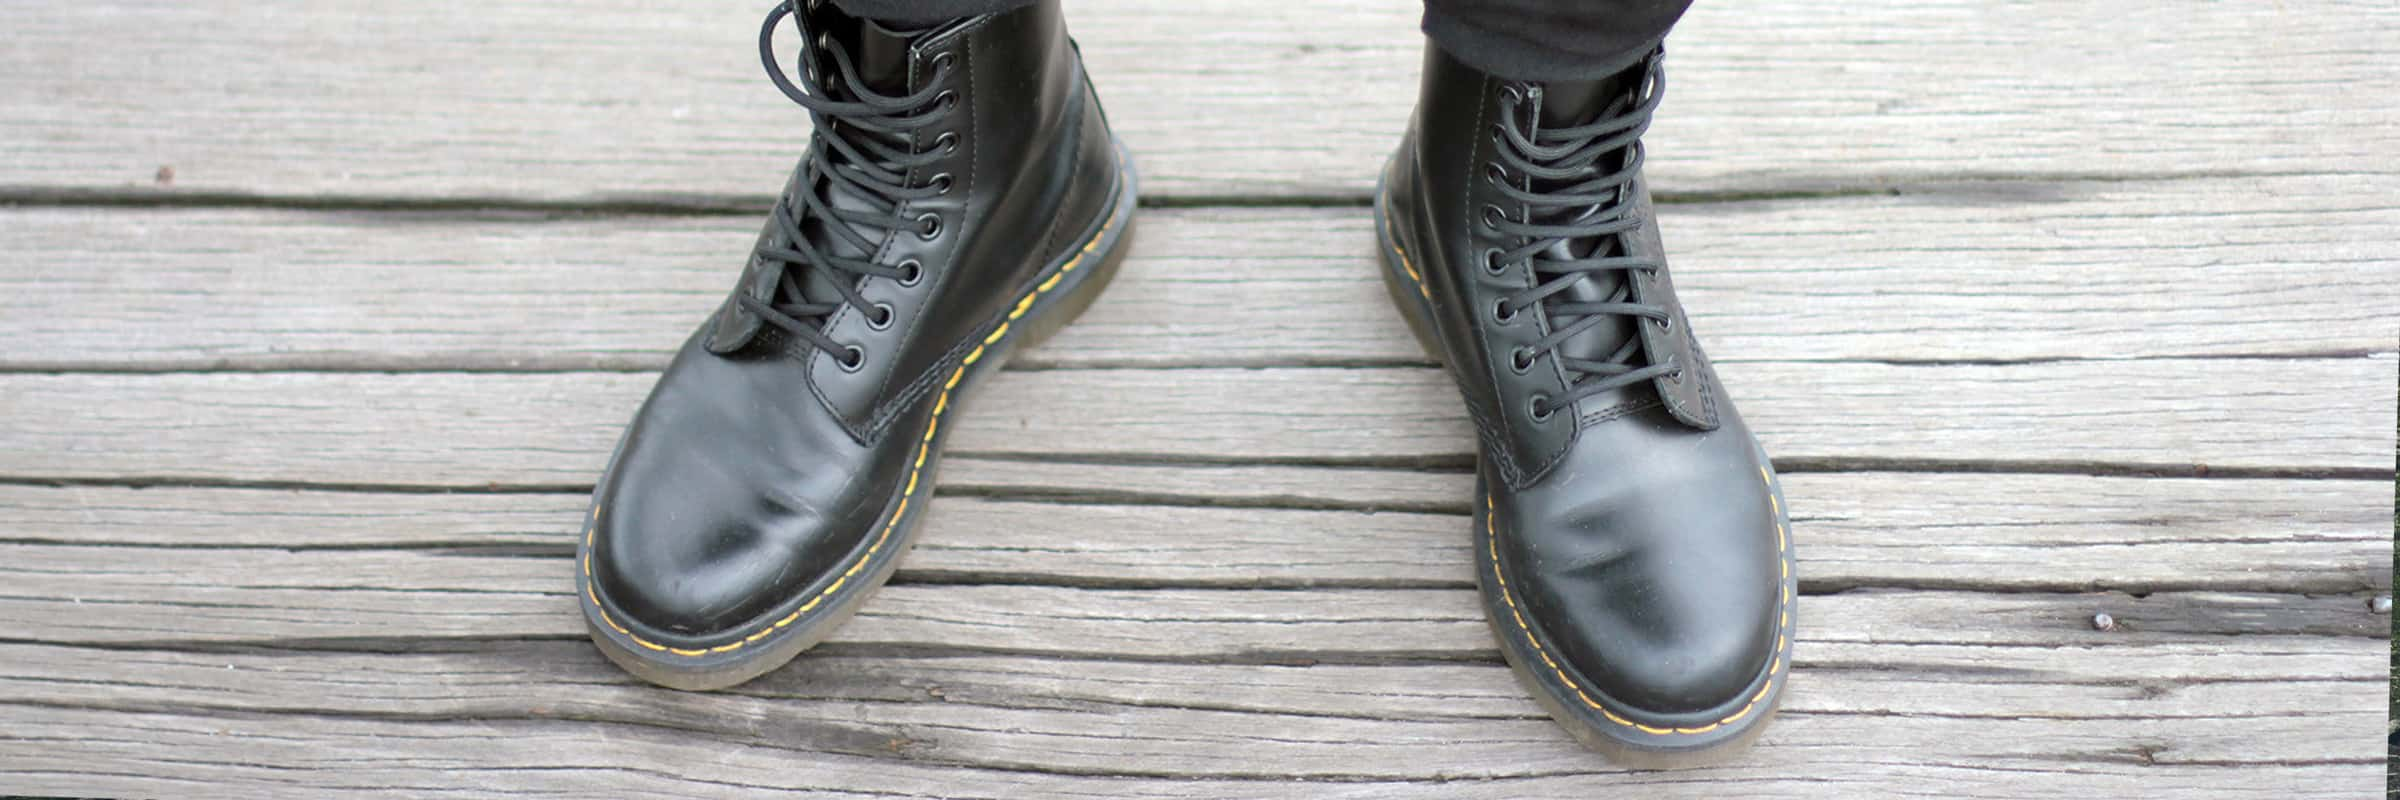 Dr Martens. Our Five Most Popular Dr. Martens Boots